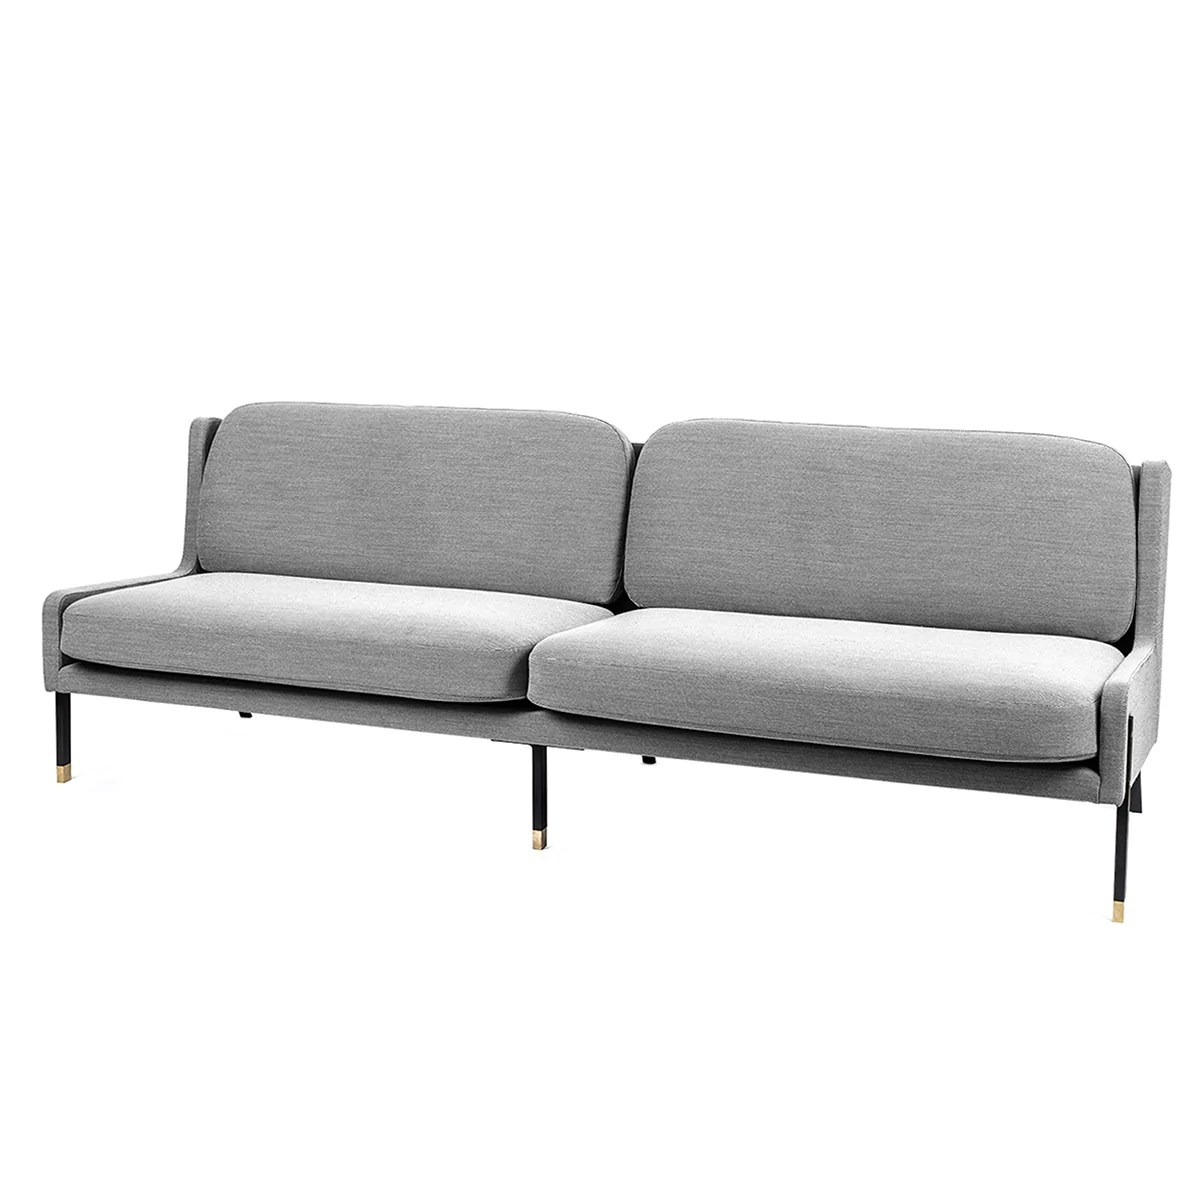 Corduroy 3 Seater Sofa Stellar Works Contemporary Furniture Accessories Do Shop